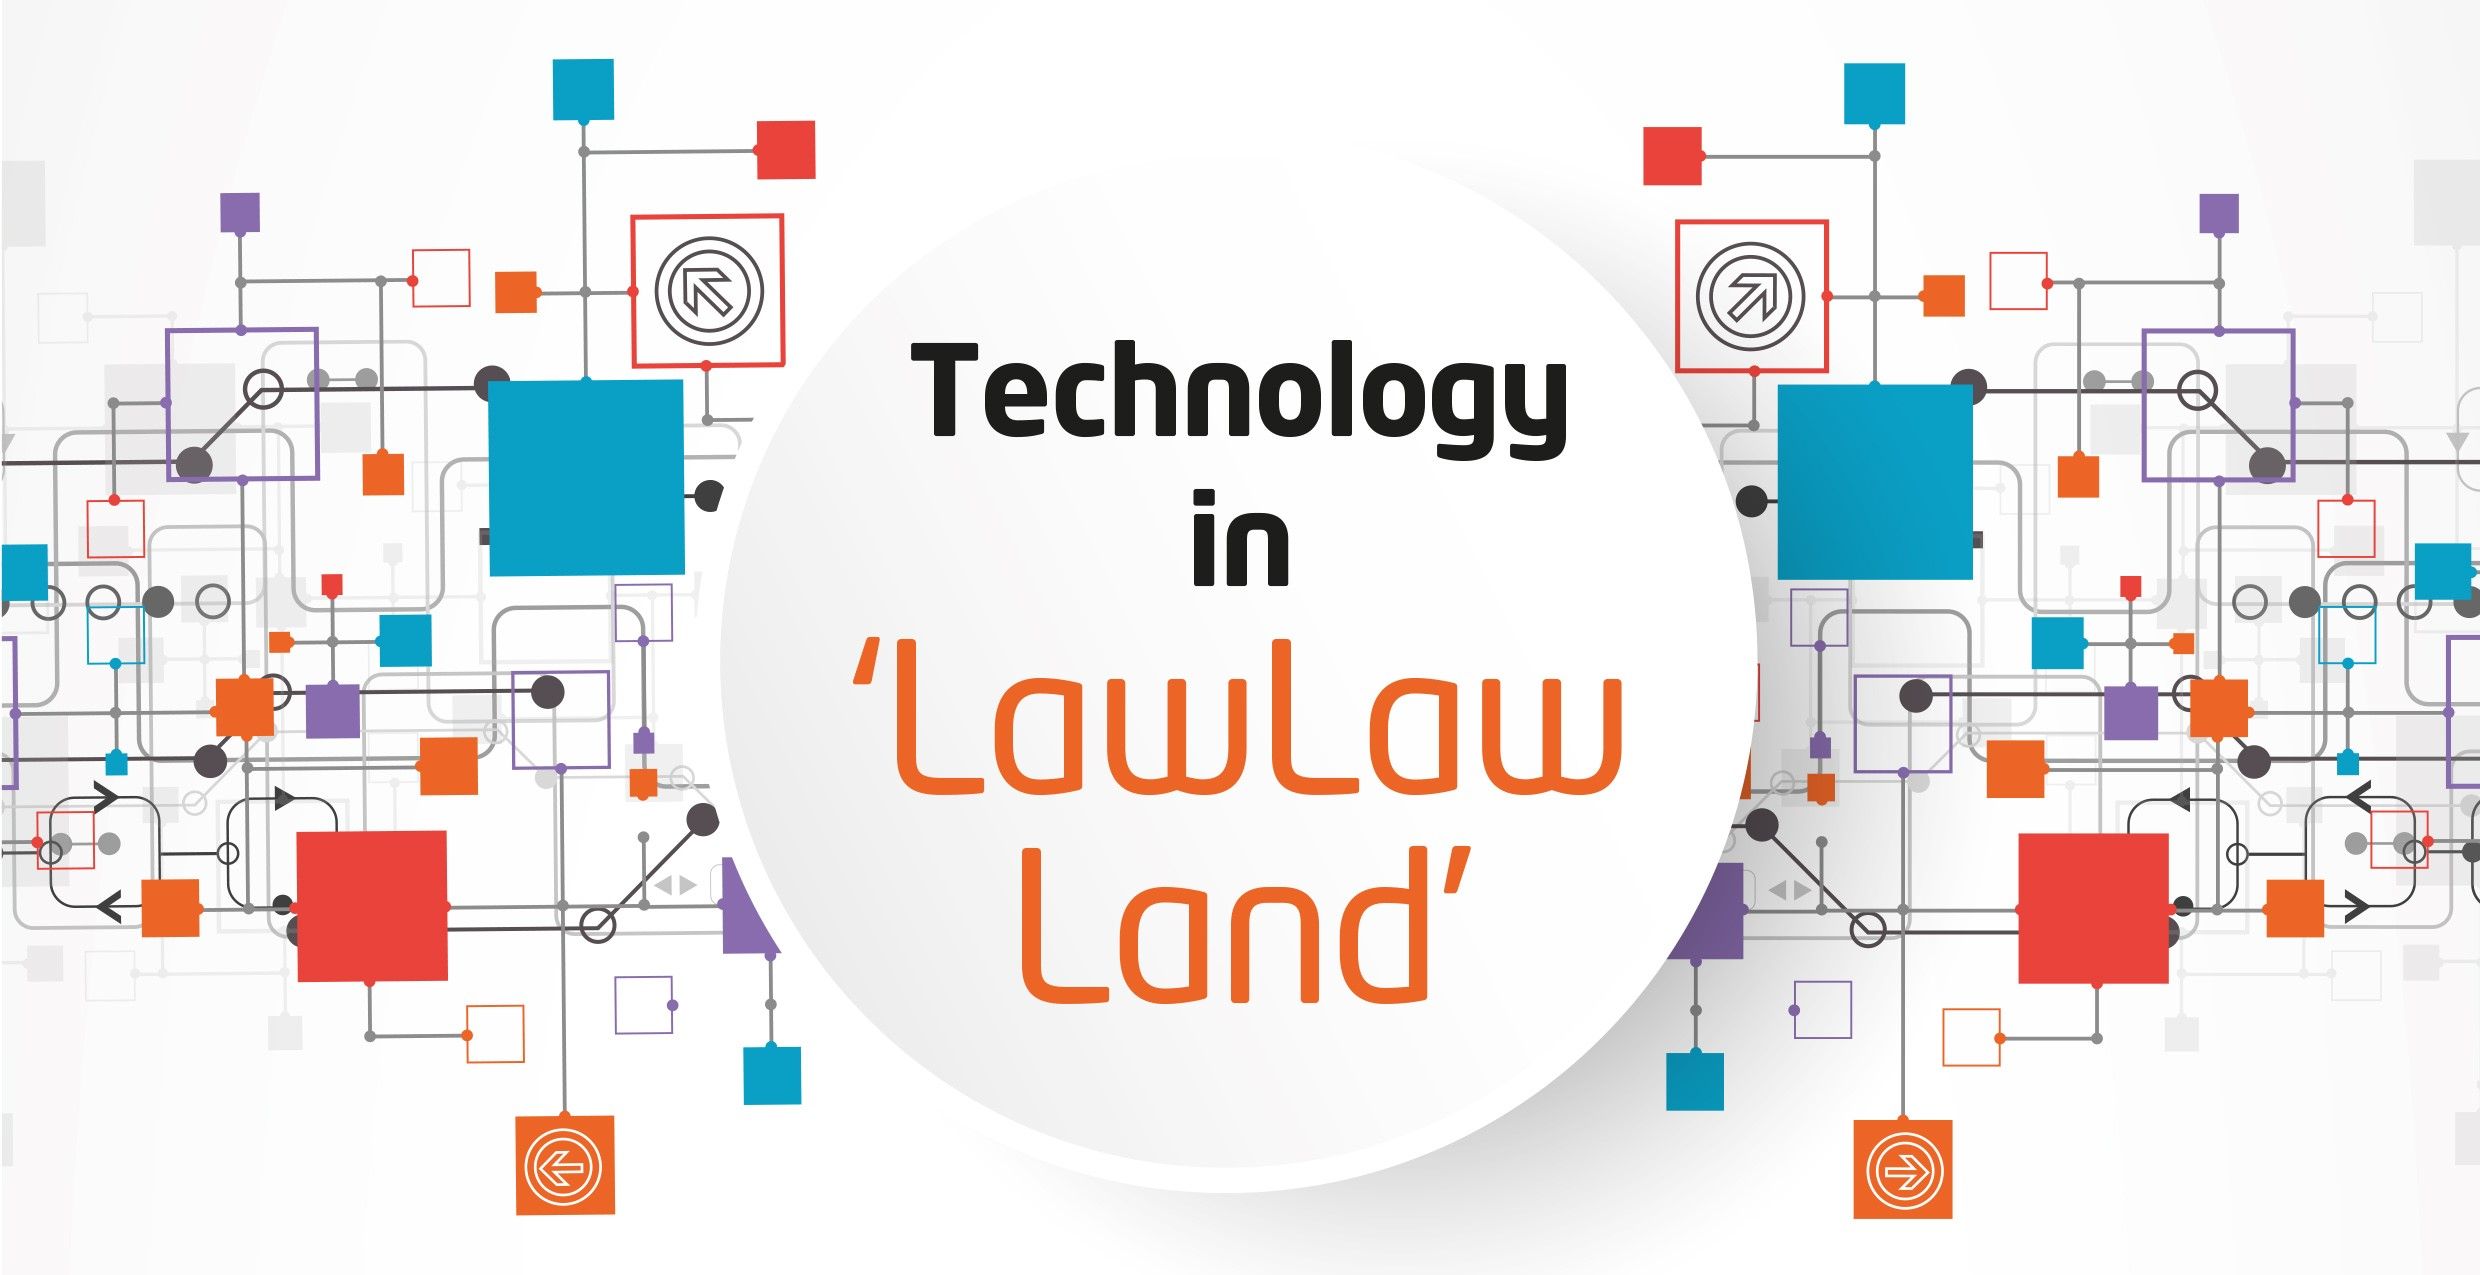 Technology in 'Law Law Land'